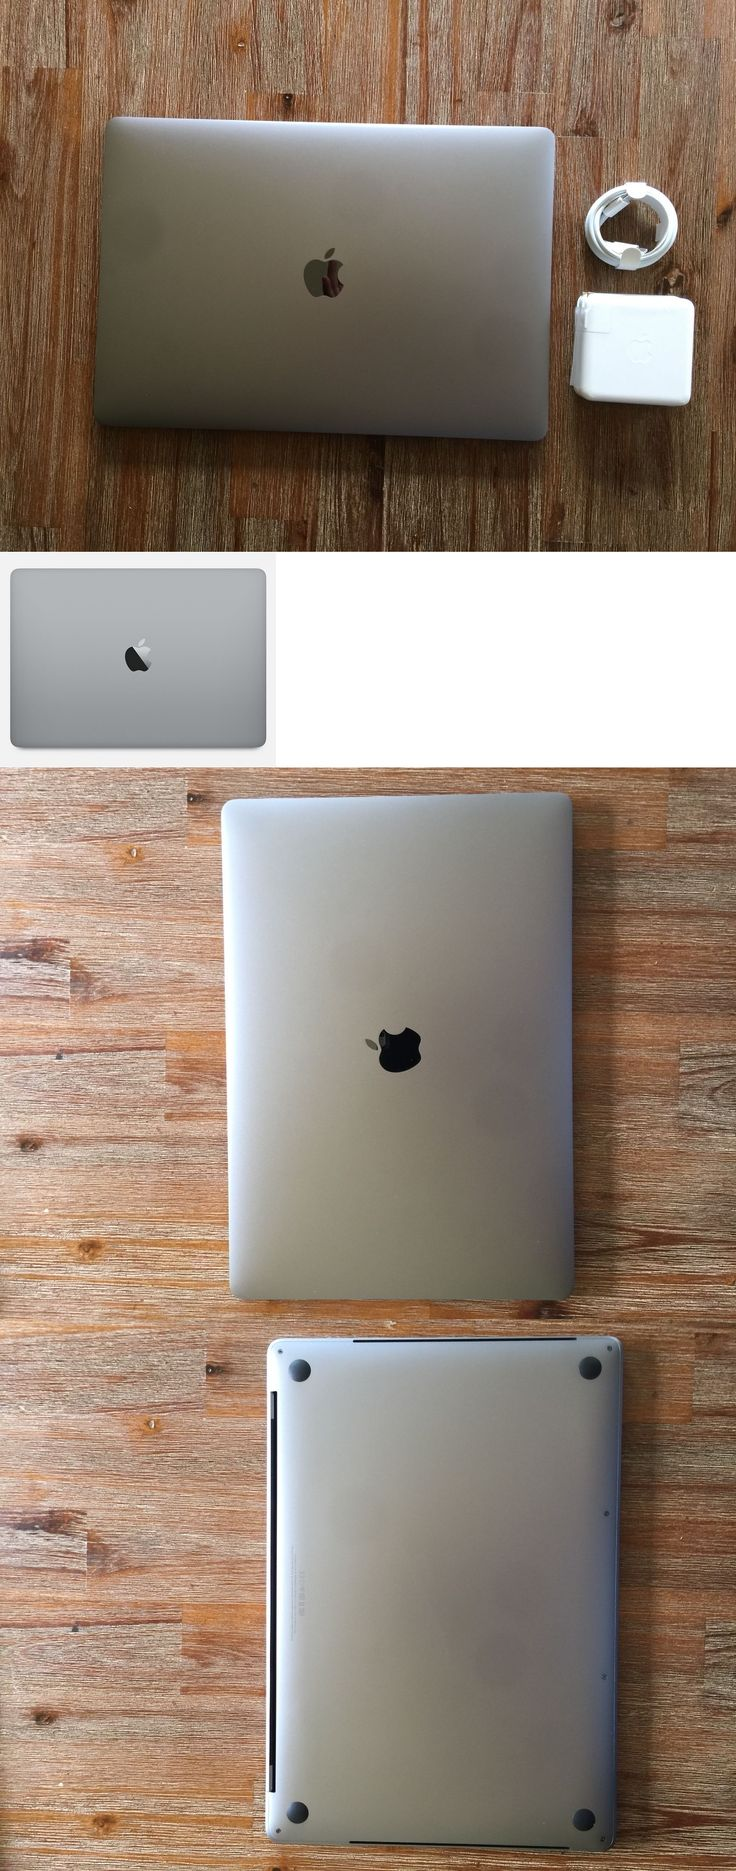 general for sale: New Apple Macbook Pro 15 Retina Mptr2ll A 2.8Ghz I7 16Gb 256Gb Touchbar 2017 -> BUY IT NOW ONLY: $2149 on eBay!